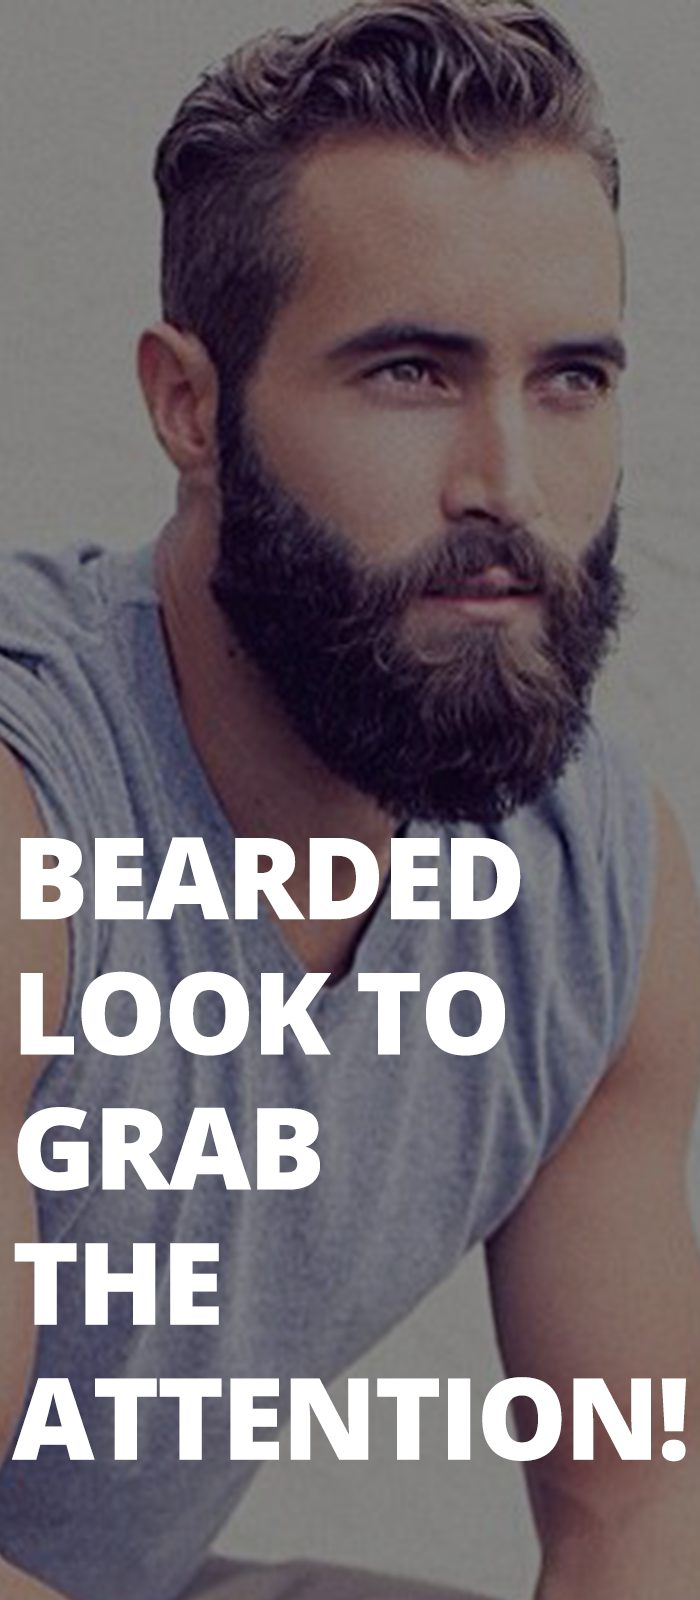 Bearded Look To Grab The Attention!